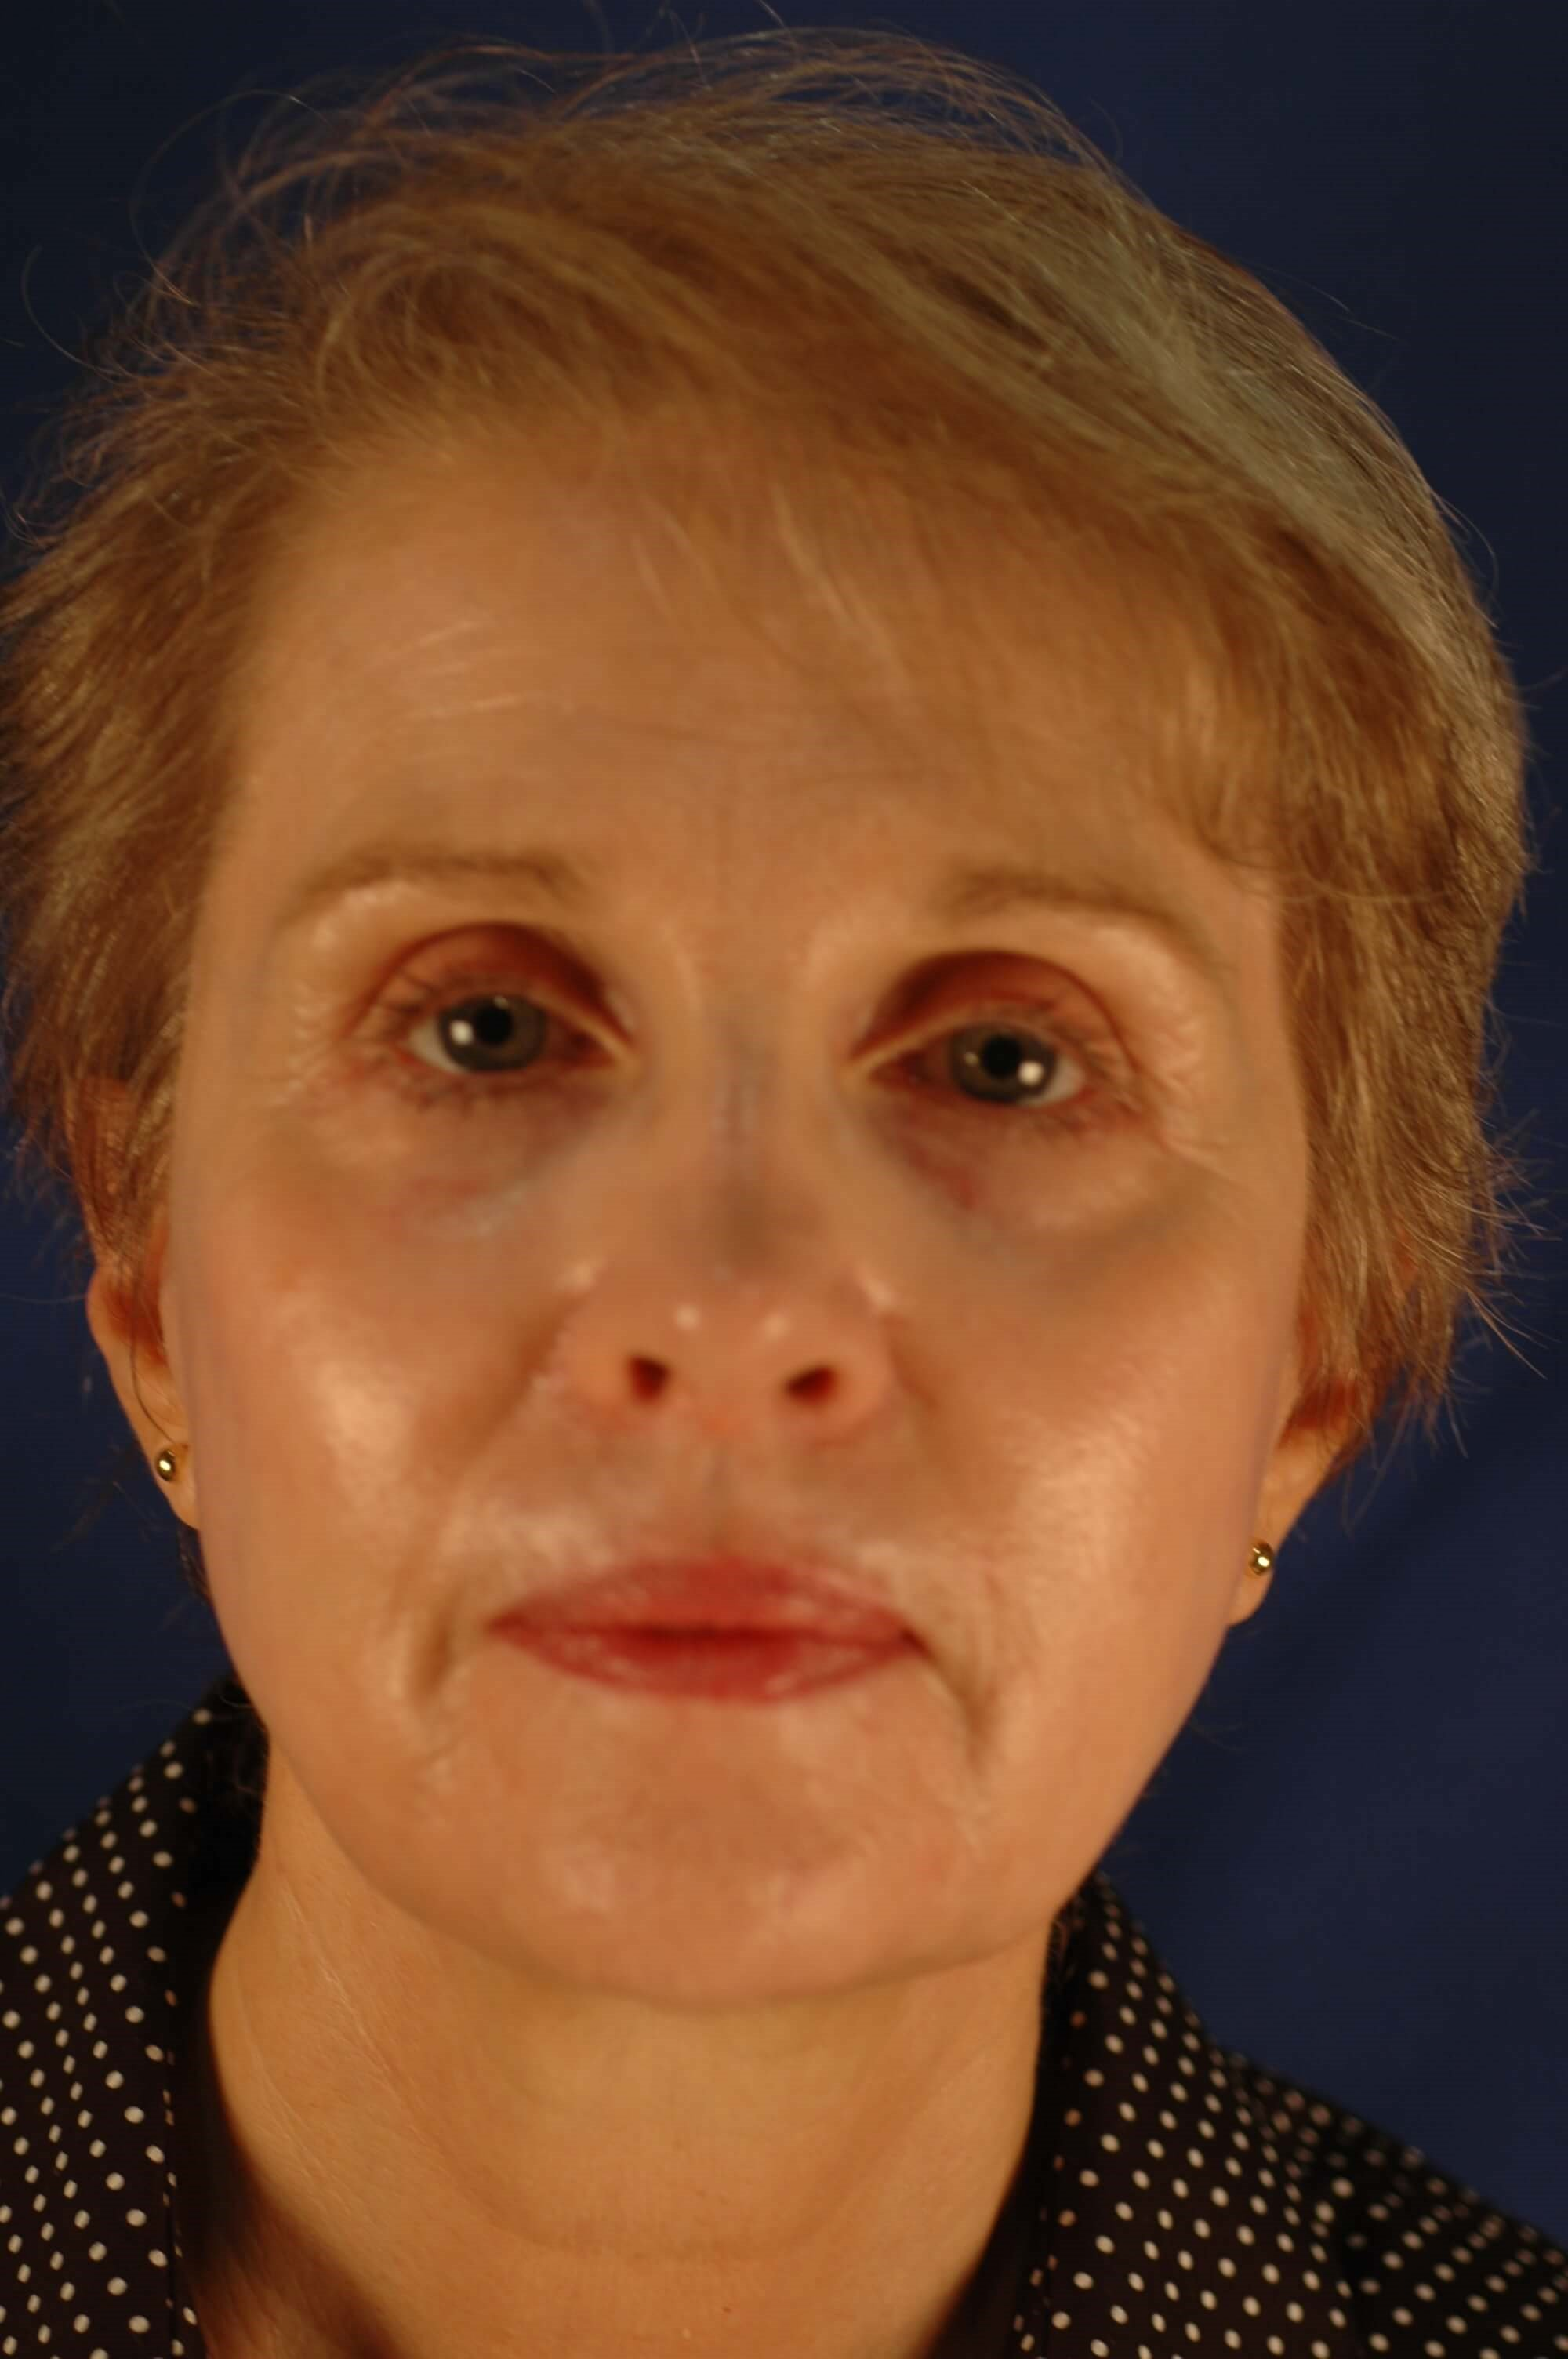 Dr. Bunkis Facial Rejuvenation Front View After